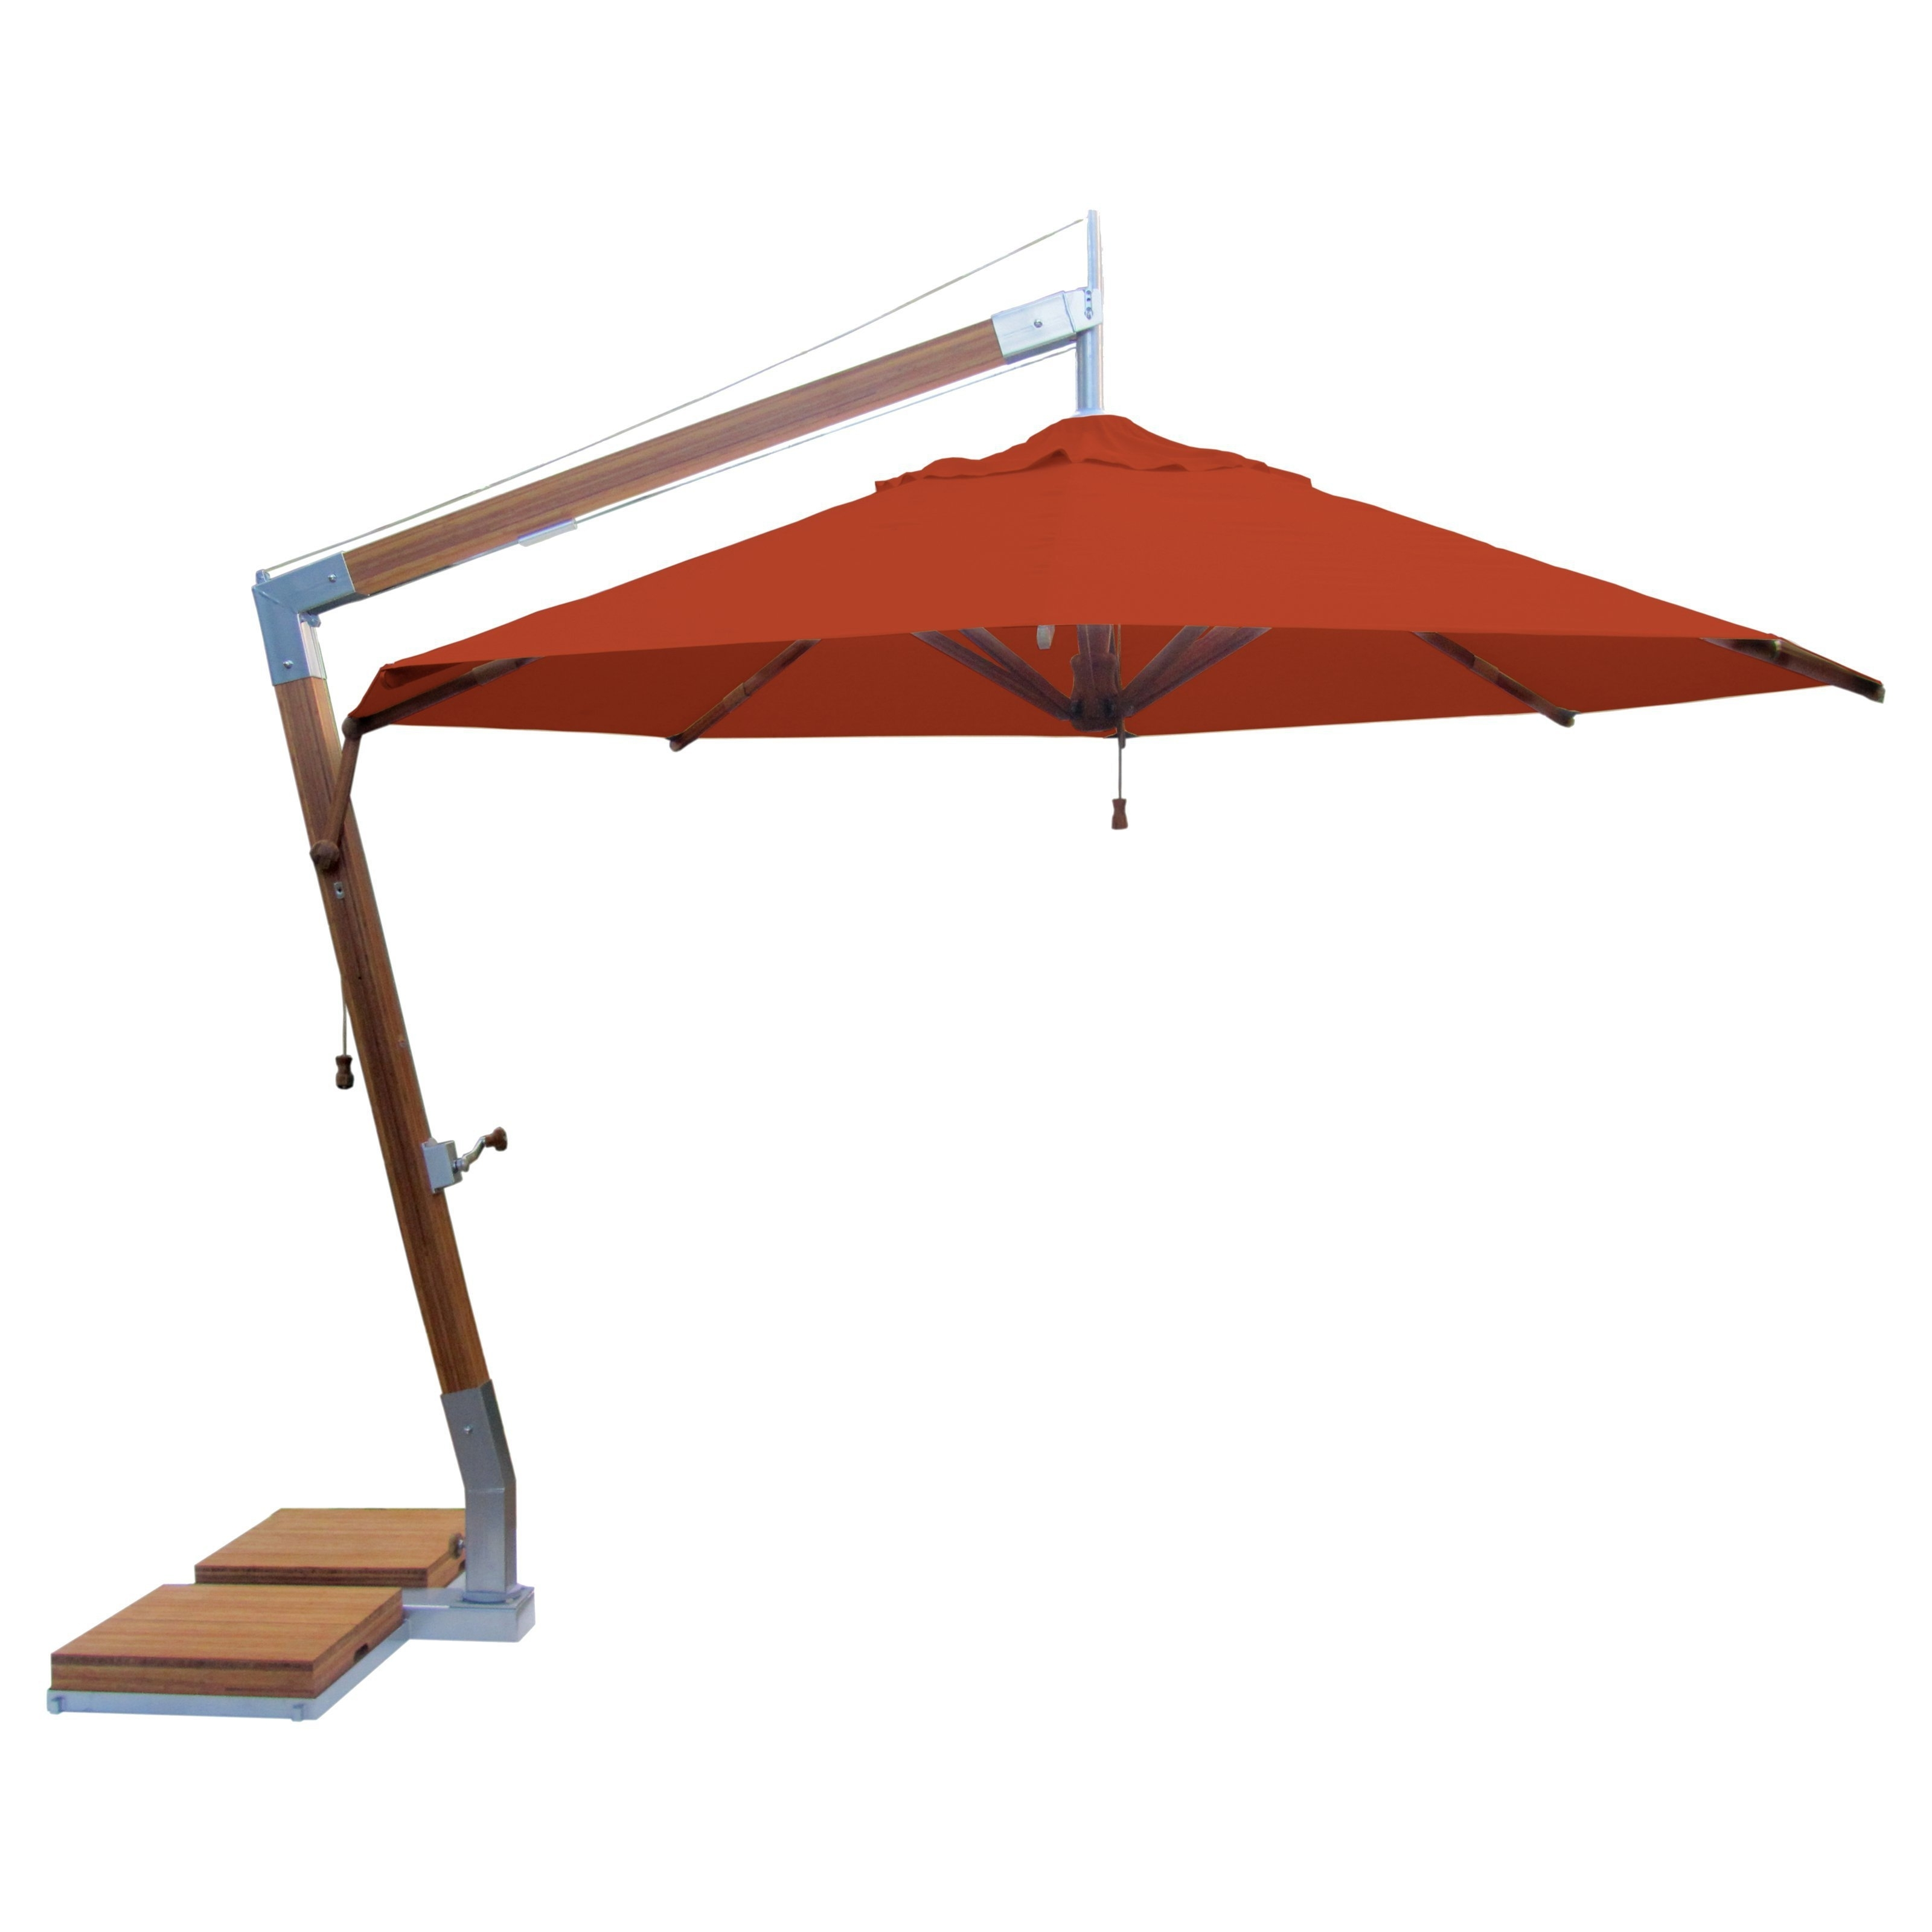 Endearing Base Shop Simply Shade Tan Offset Patio Umbrella With With Most Recently Released Offset Patio Umbrellas With Base (View 10 of 20)